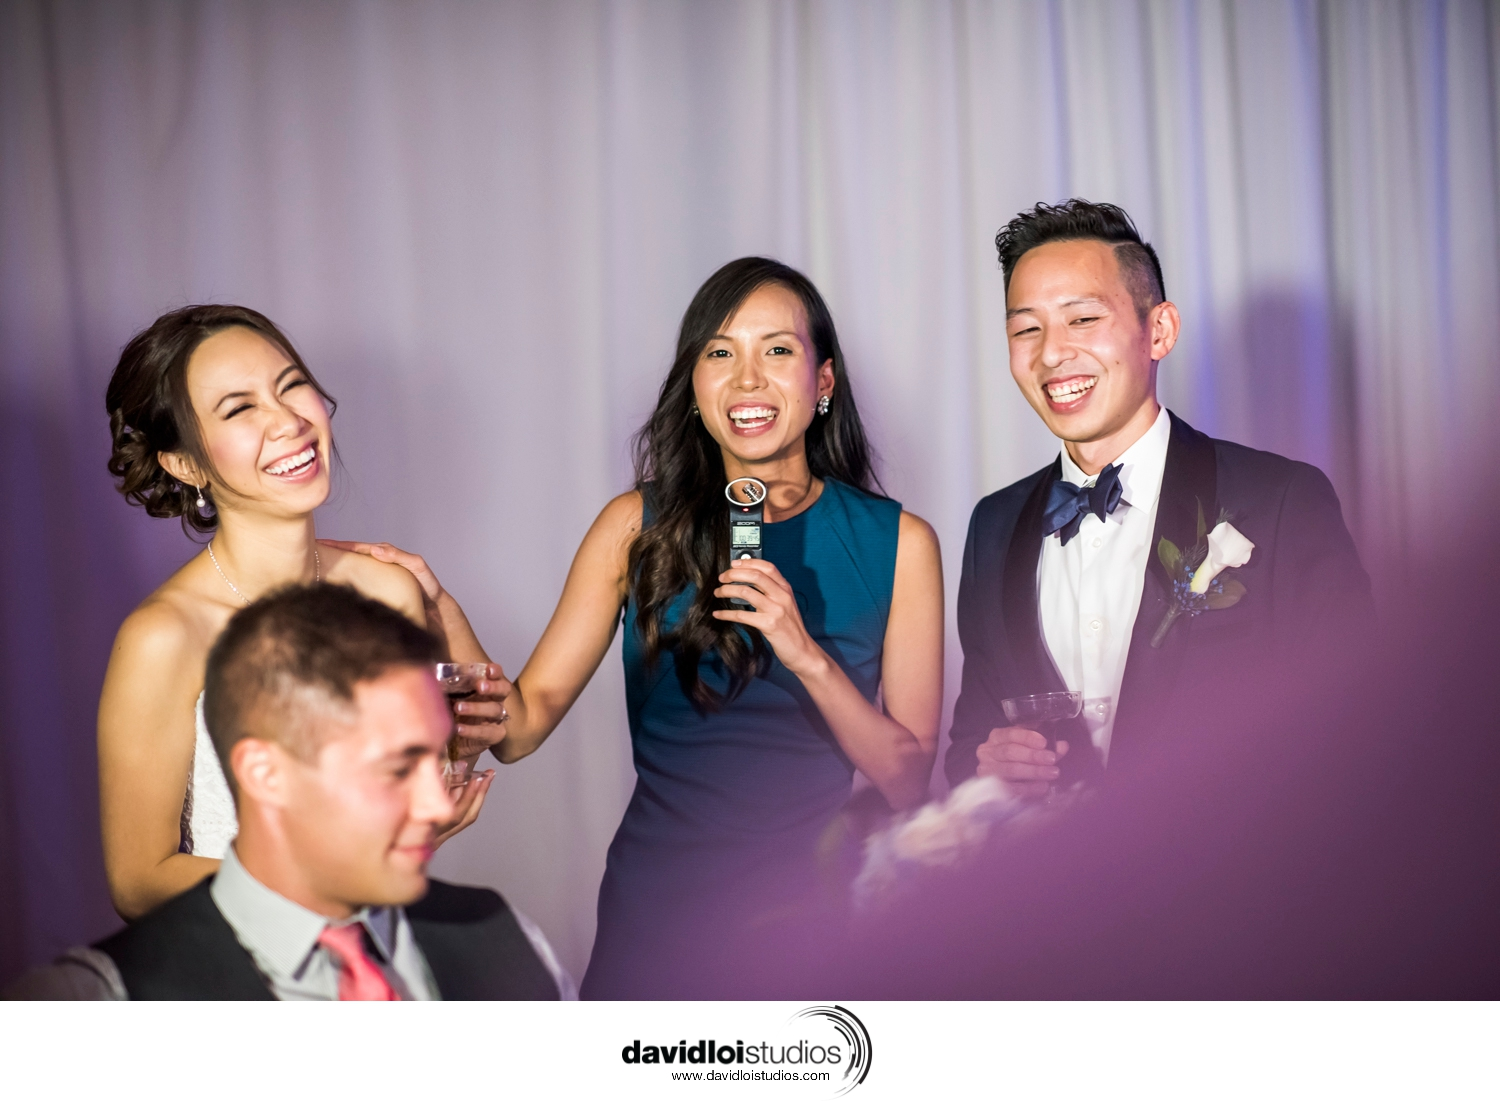 Kowloon Wedding Arlington TX-10.jpg